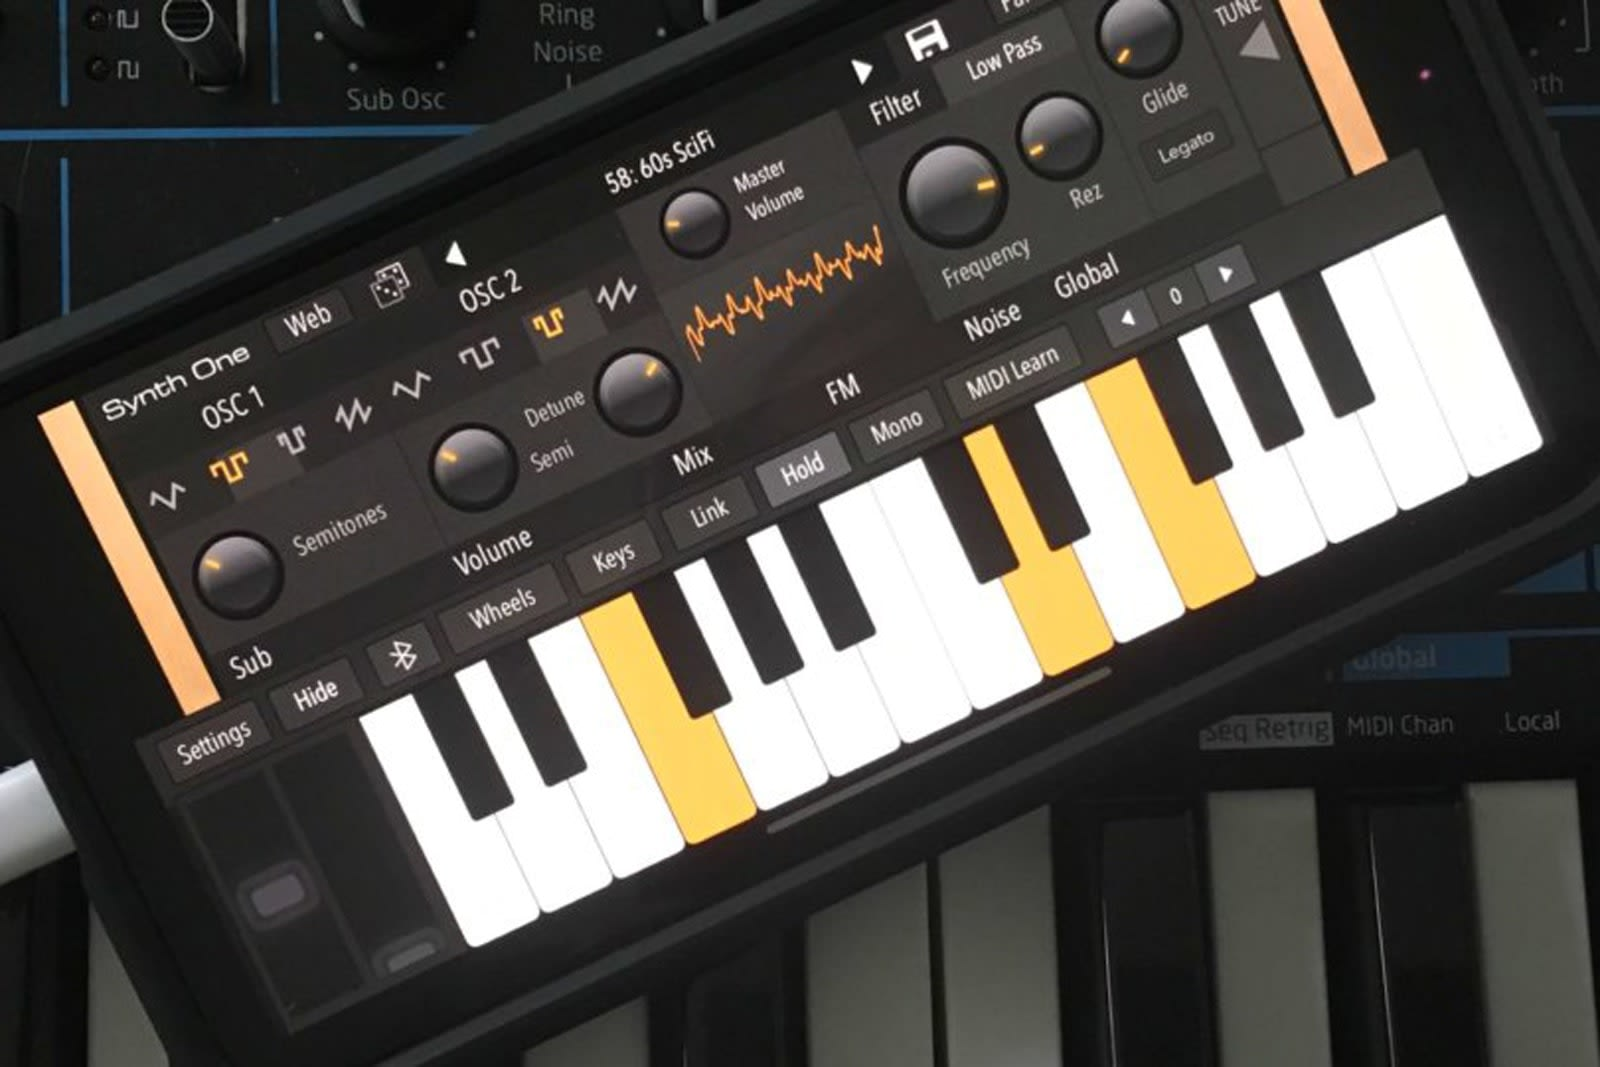 AudioKit's free, feature-loaded synth is available for iPhone